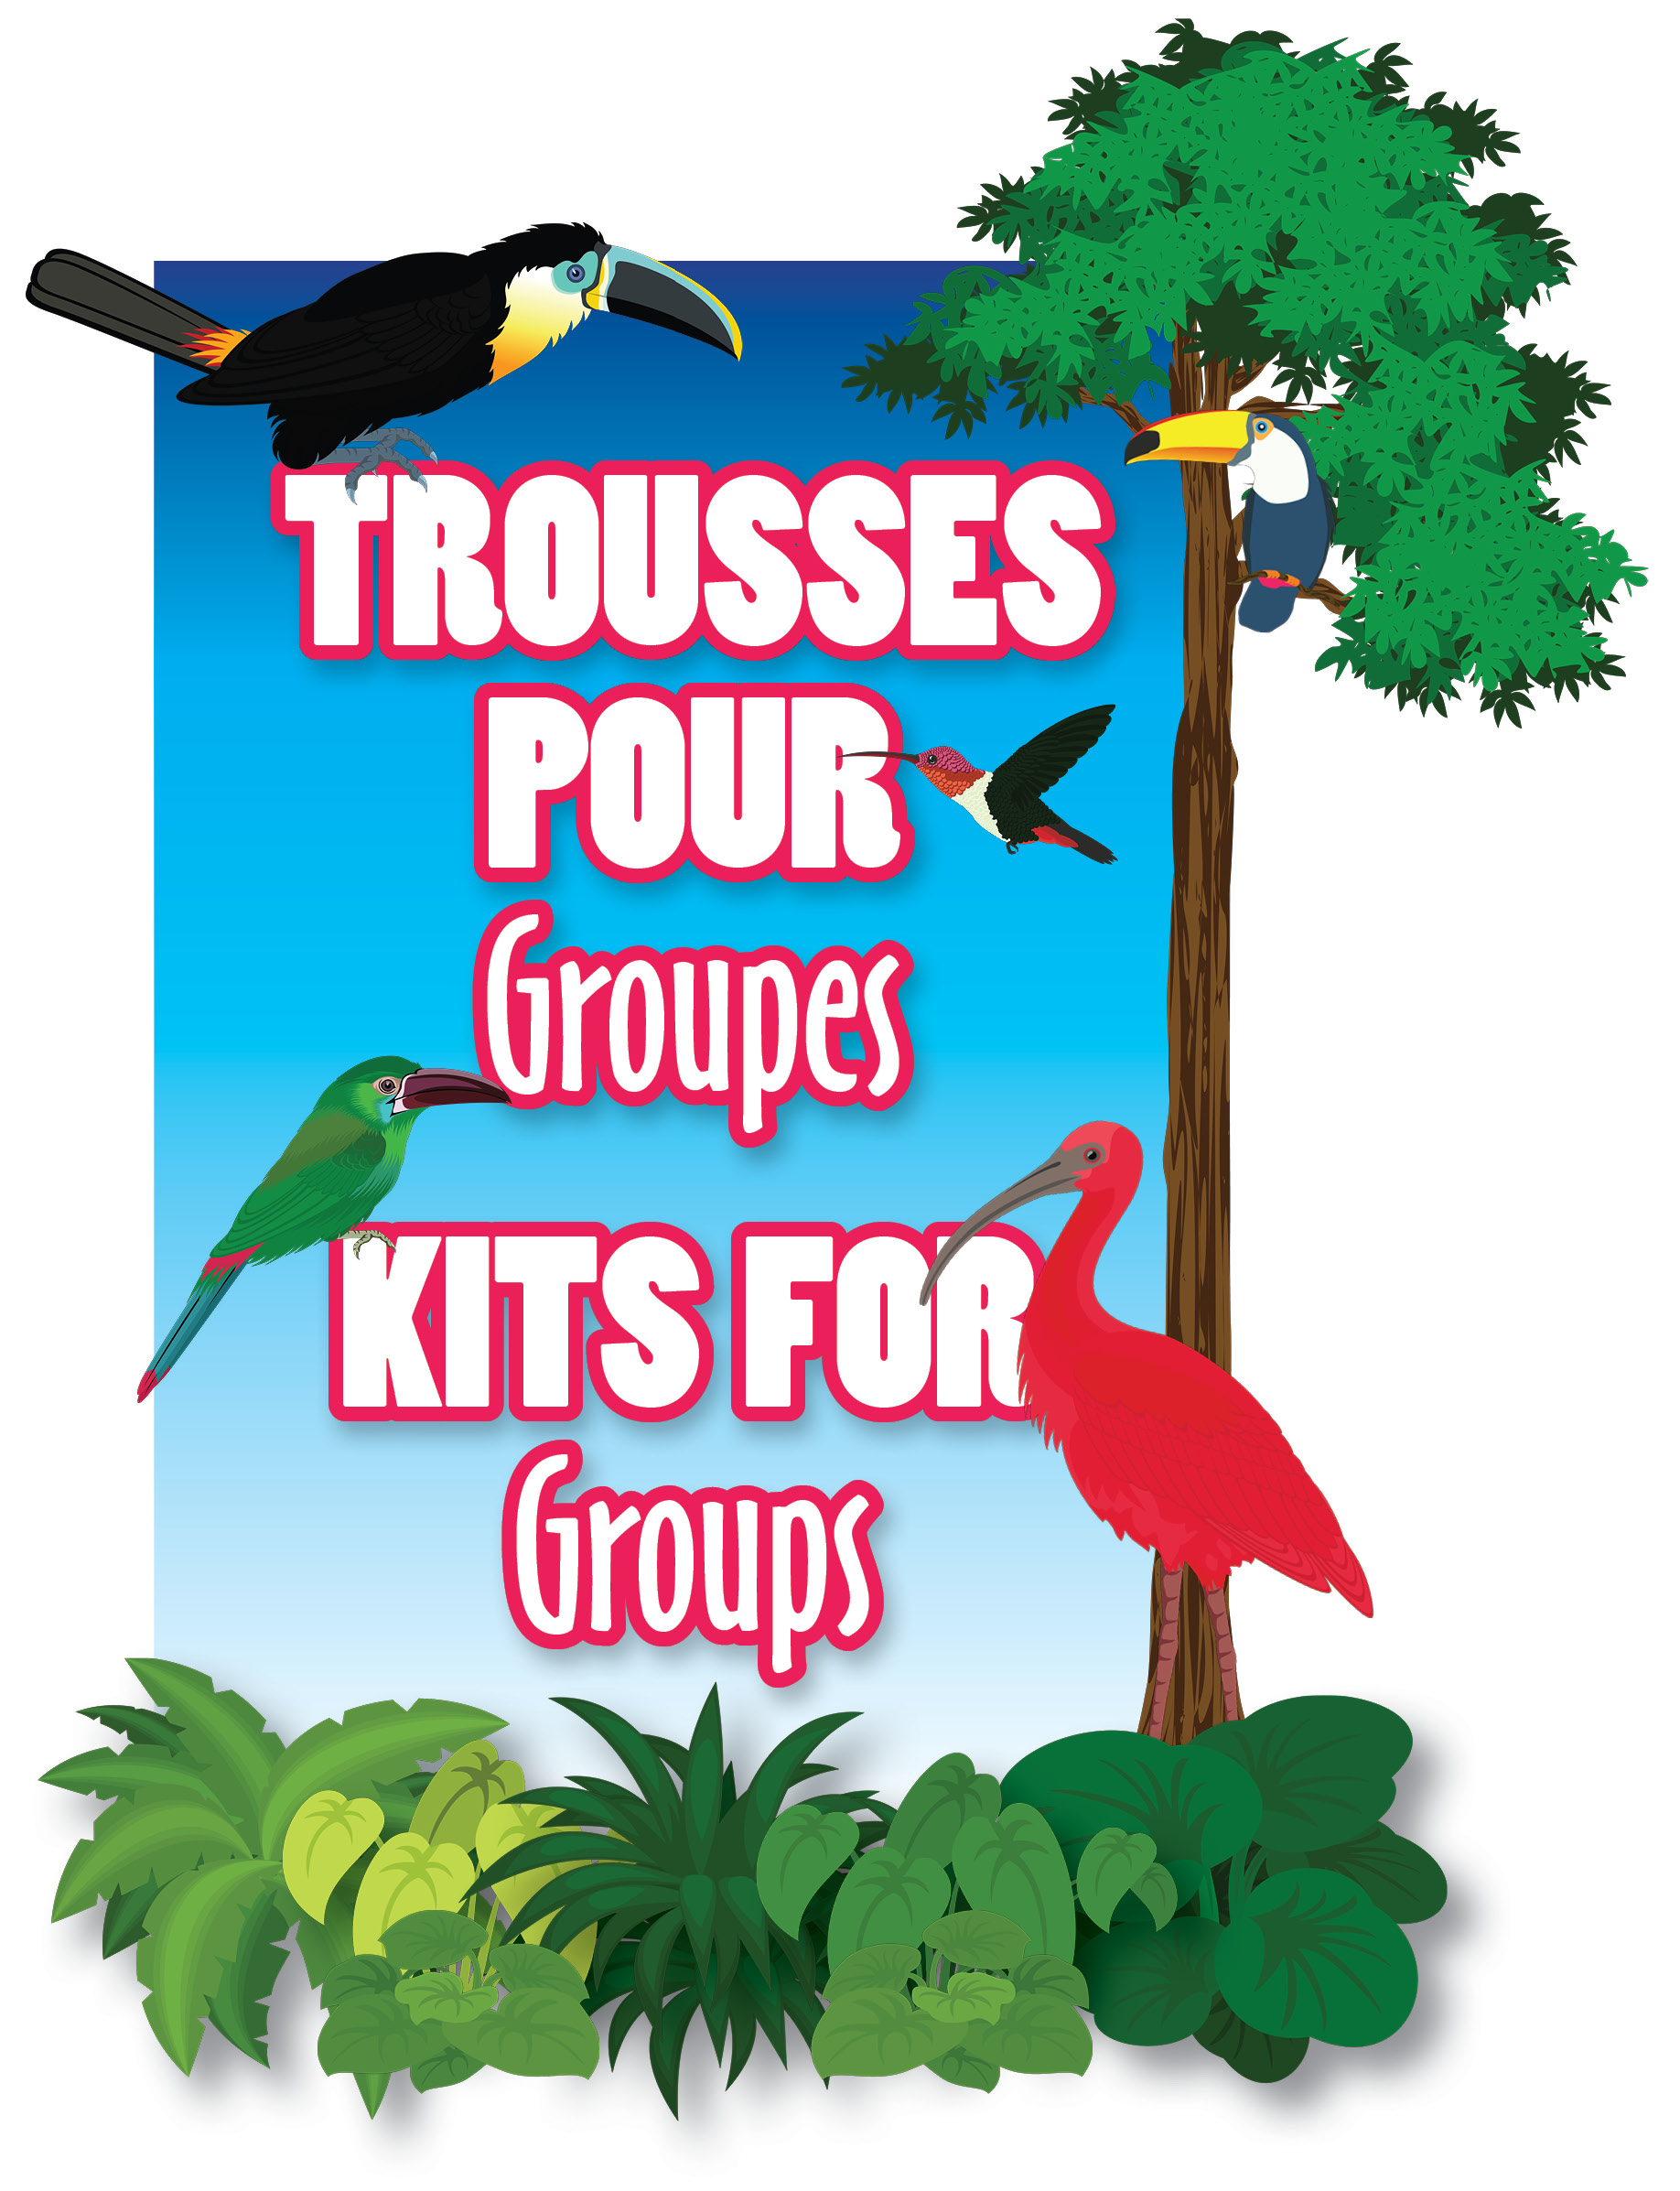 Trousses pour groupes / Kits for groups